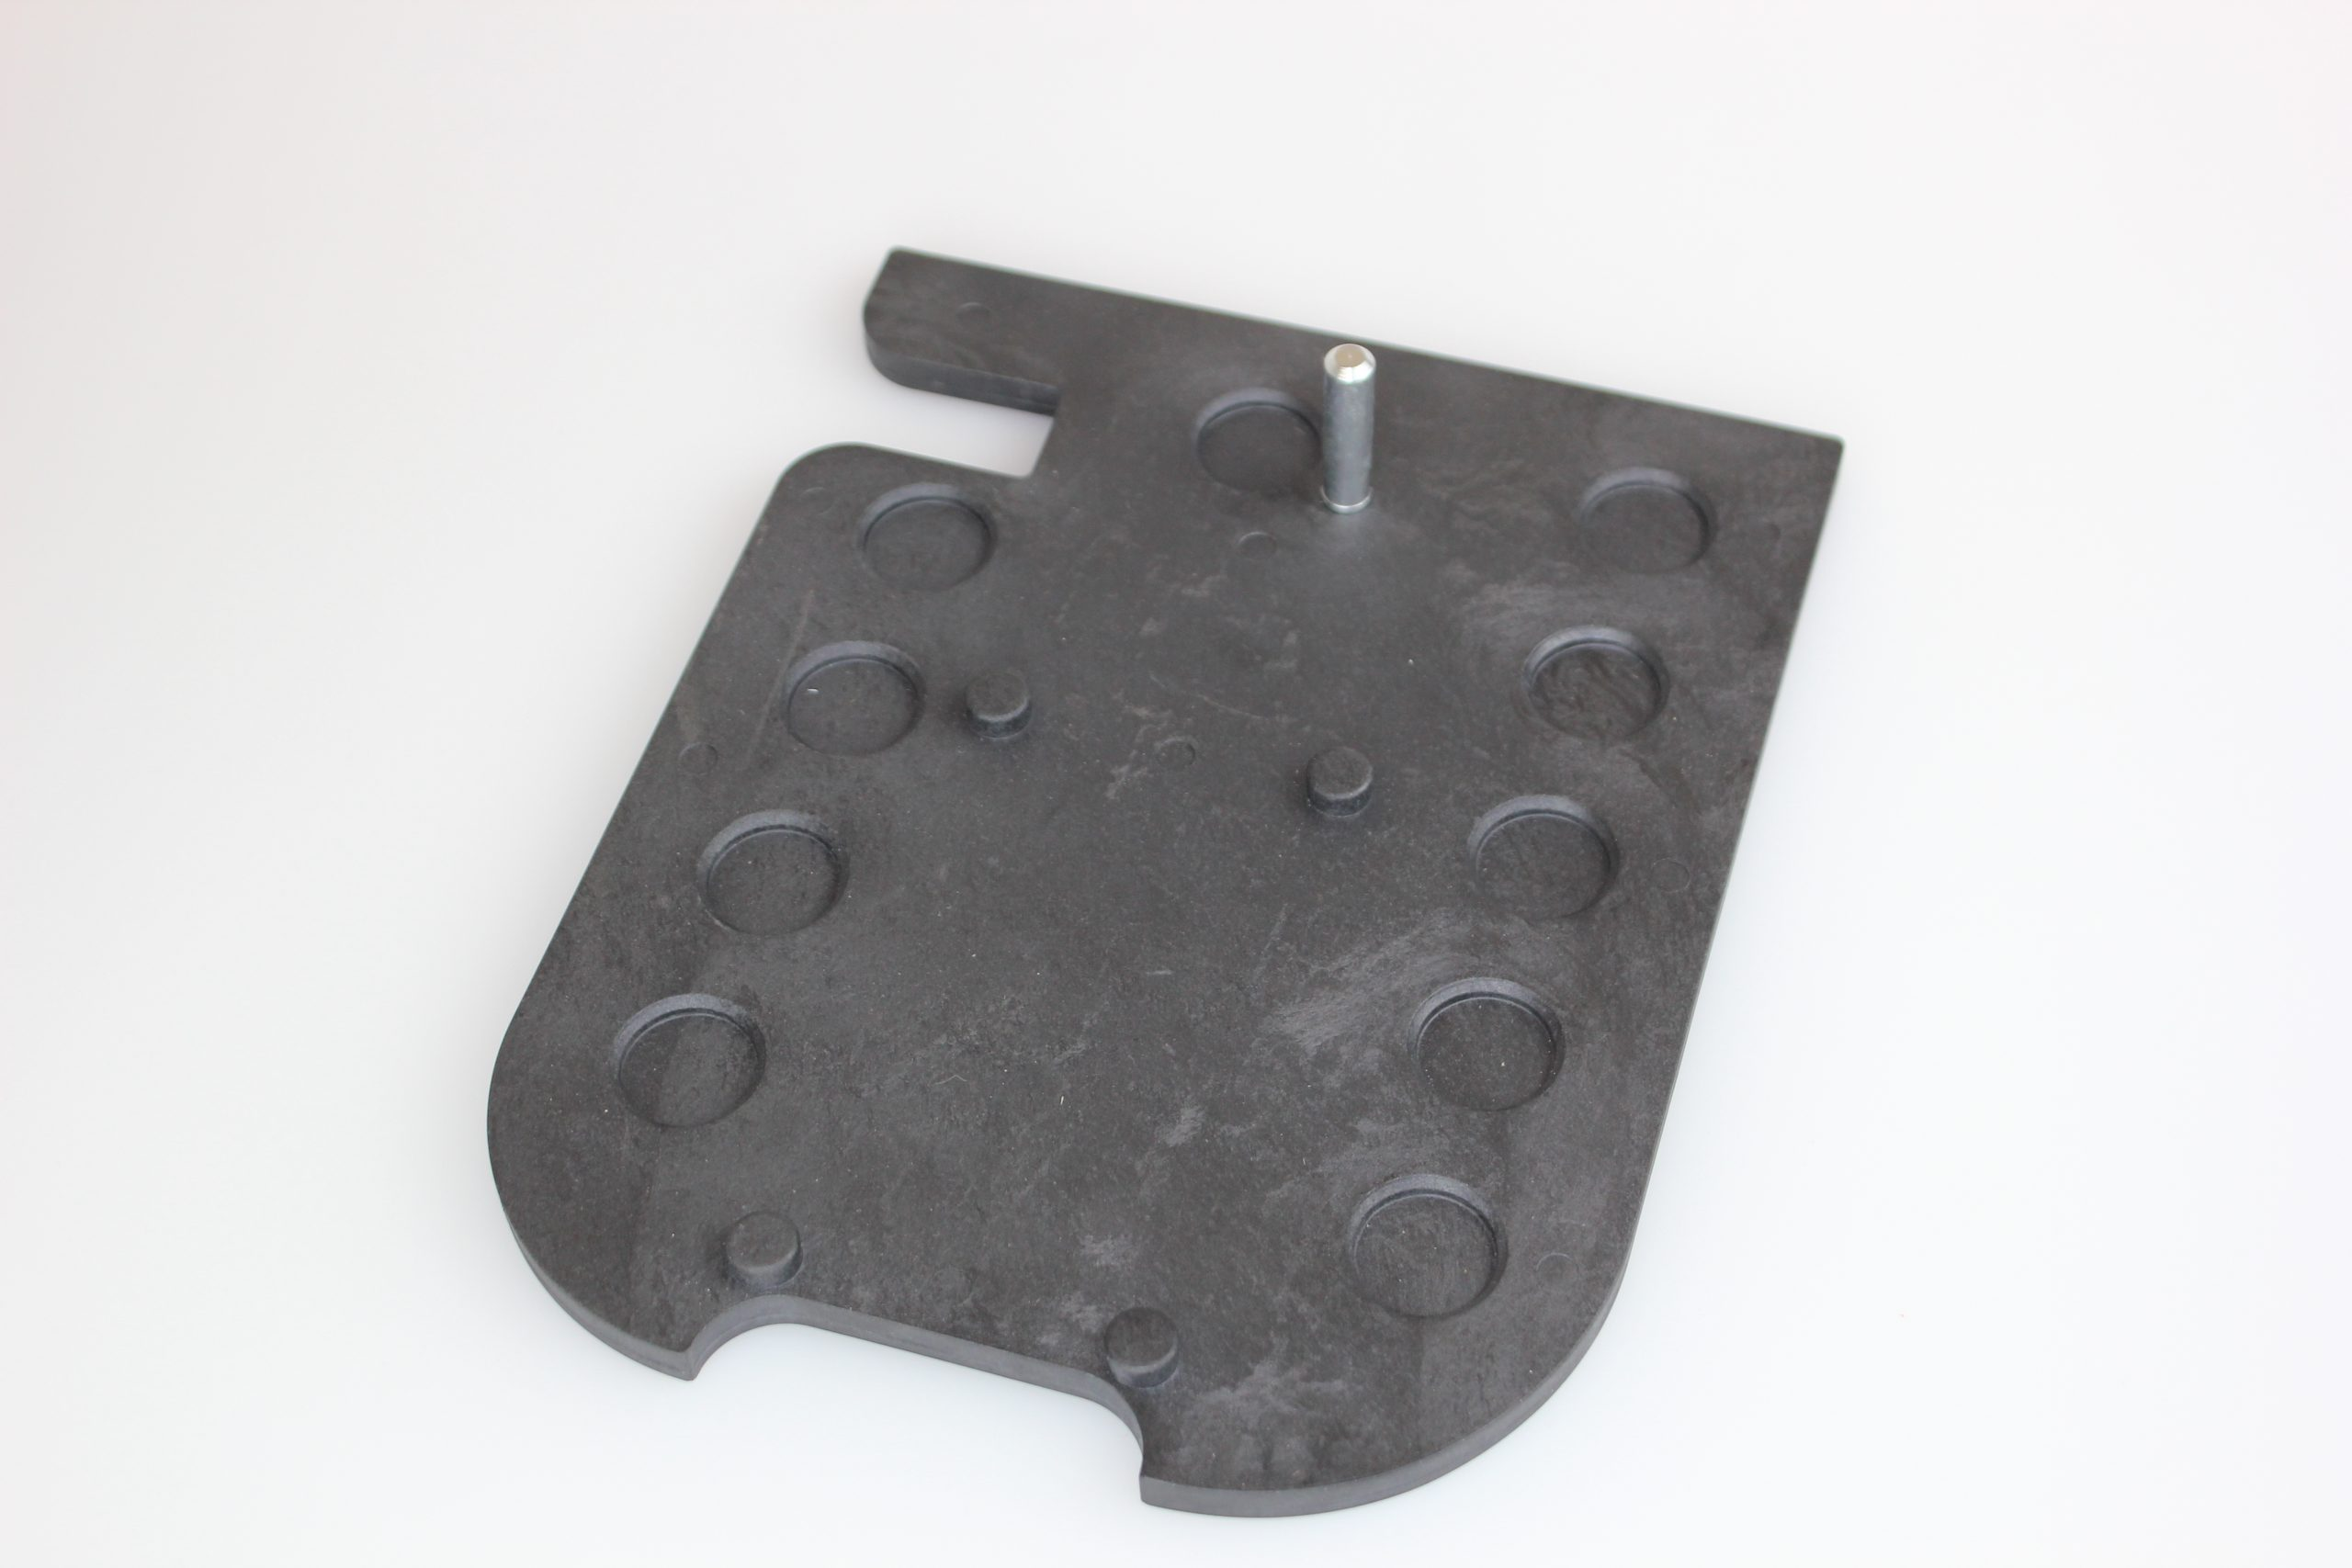 wood-working-tool-PLM-molded-base-plate-computer-generated-graphic-with-metal-stud